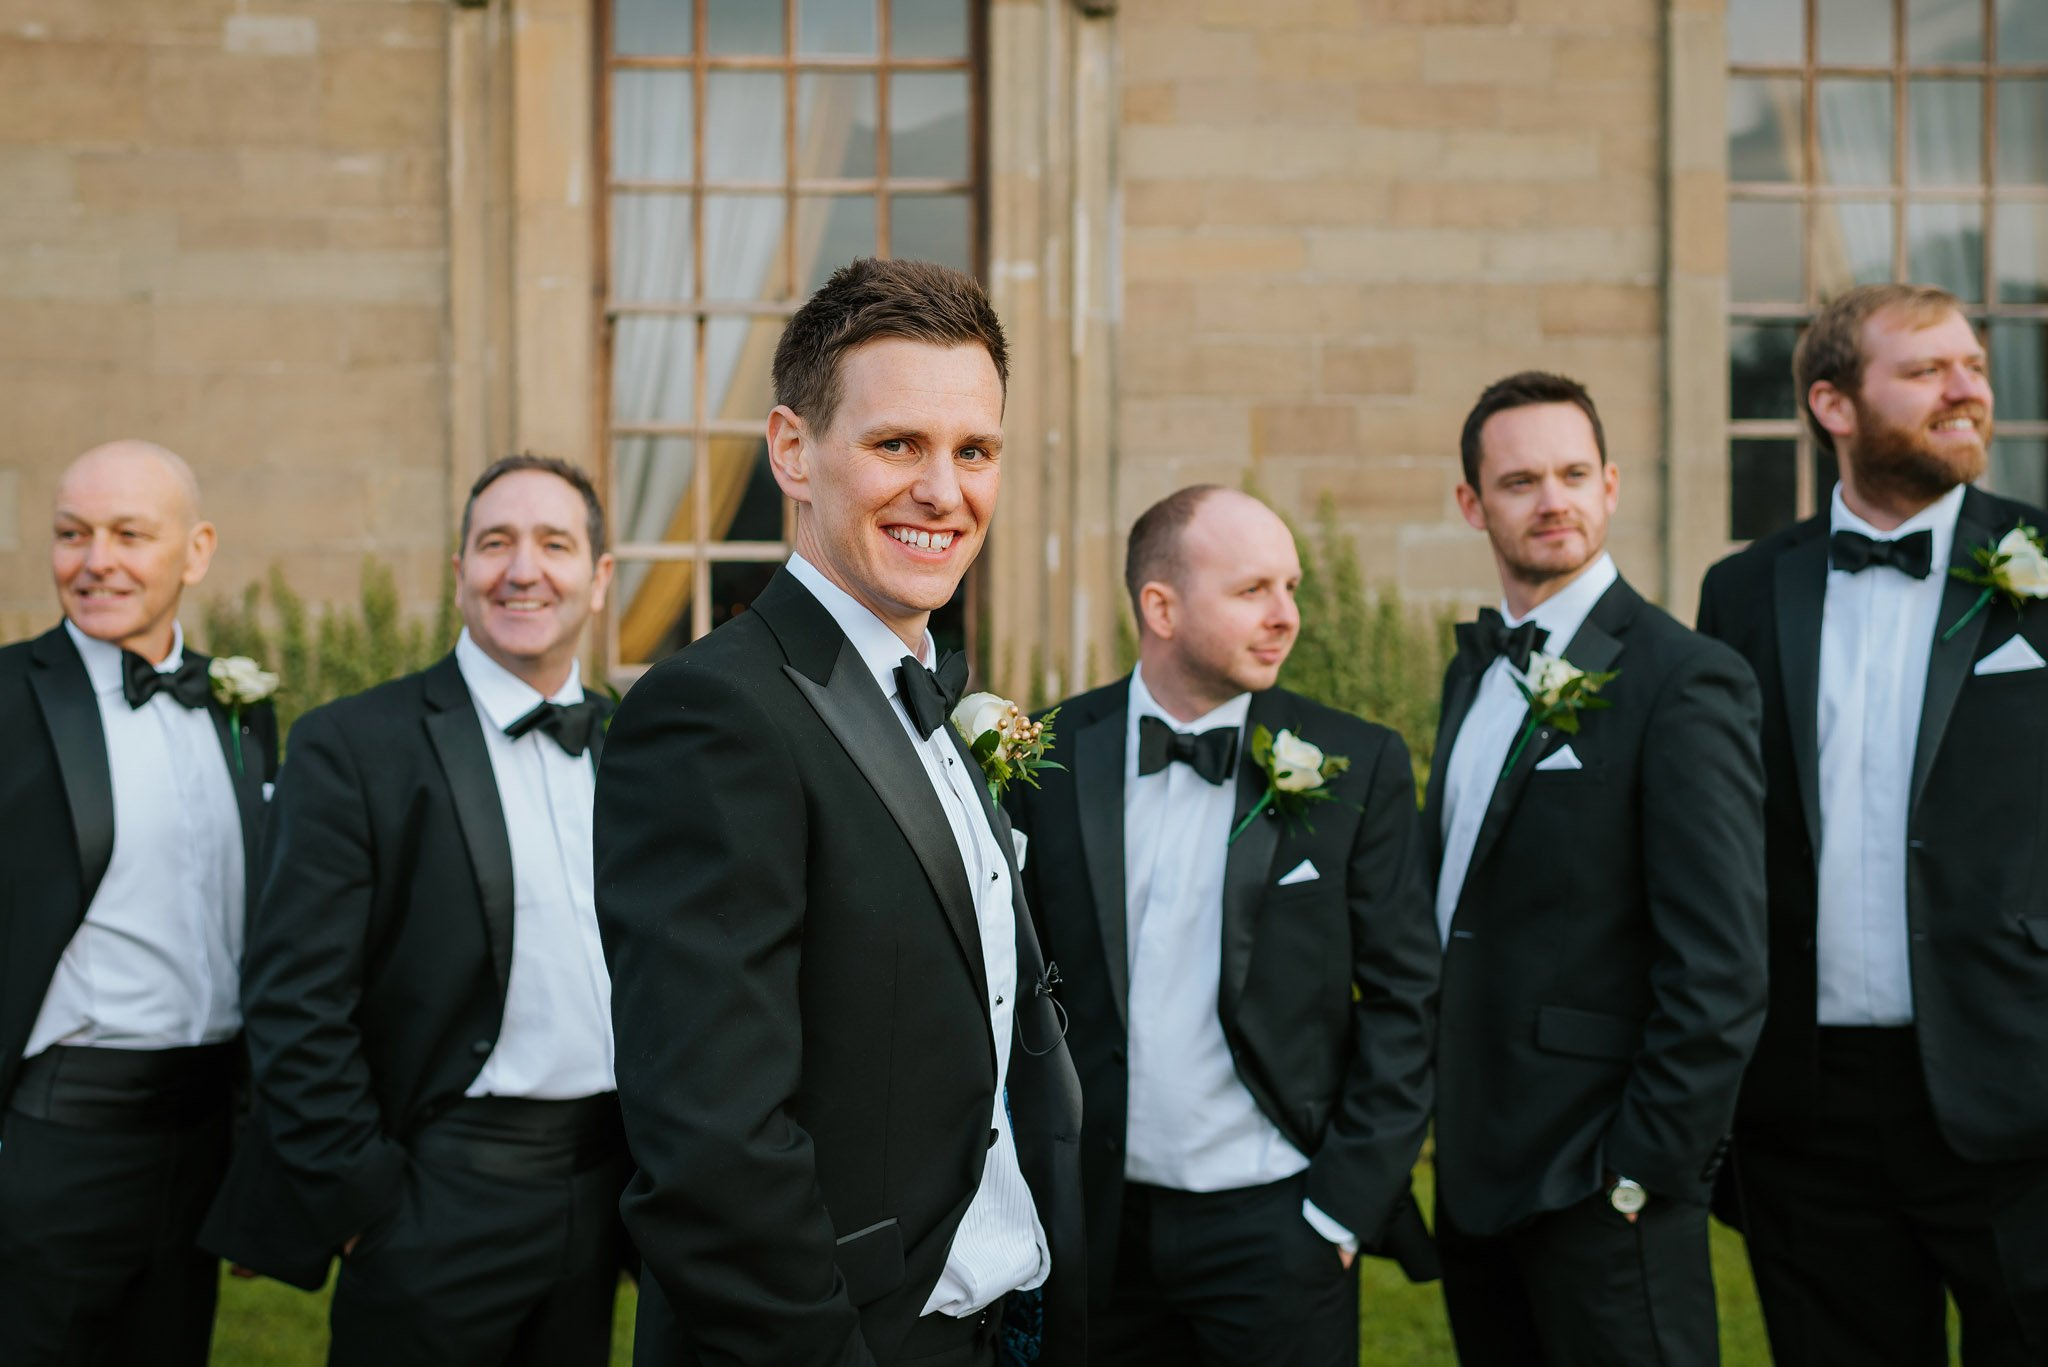 Coombe Abbey wedding in Coventry, Warwickshire - Sam + Matt 26